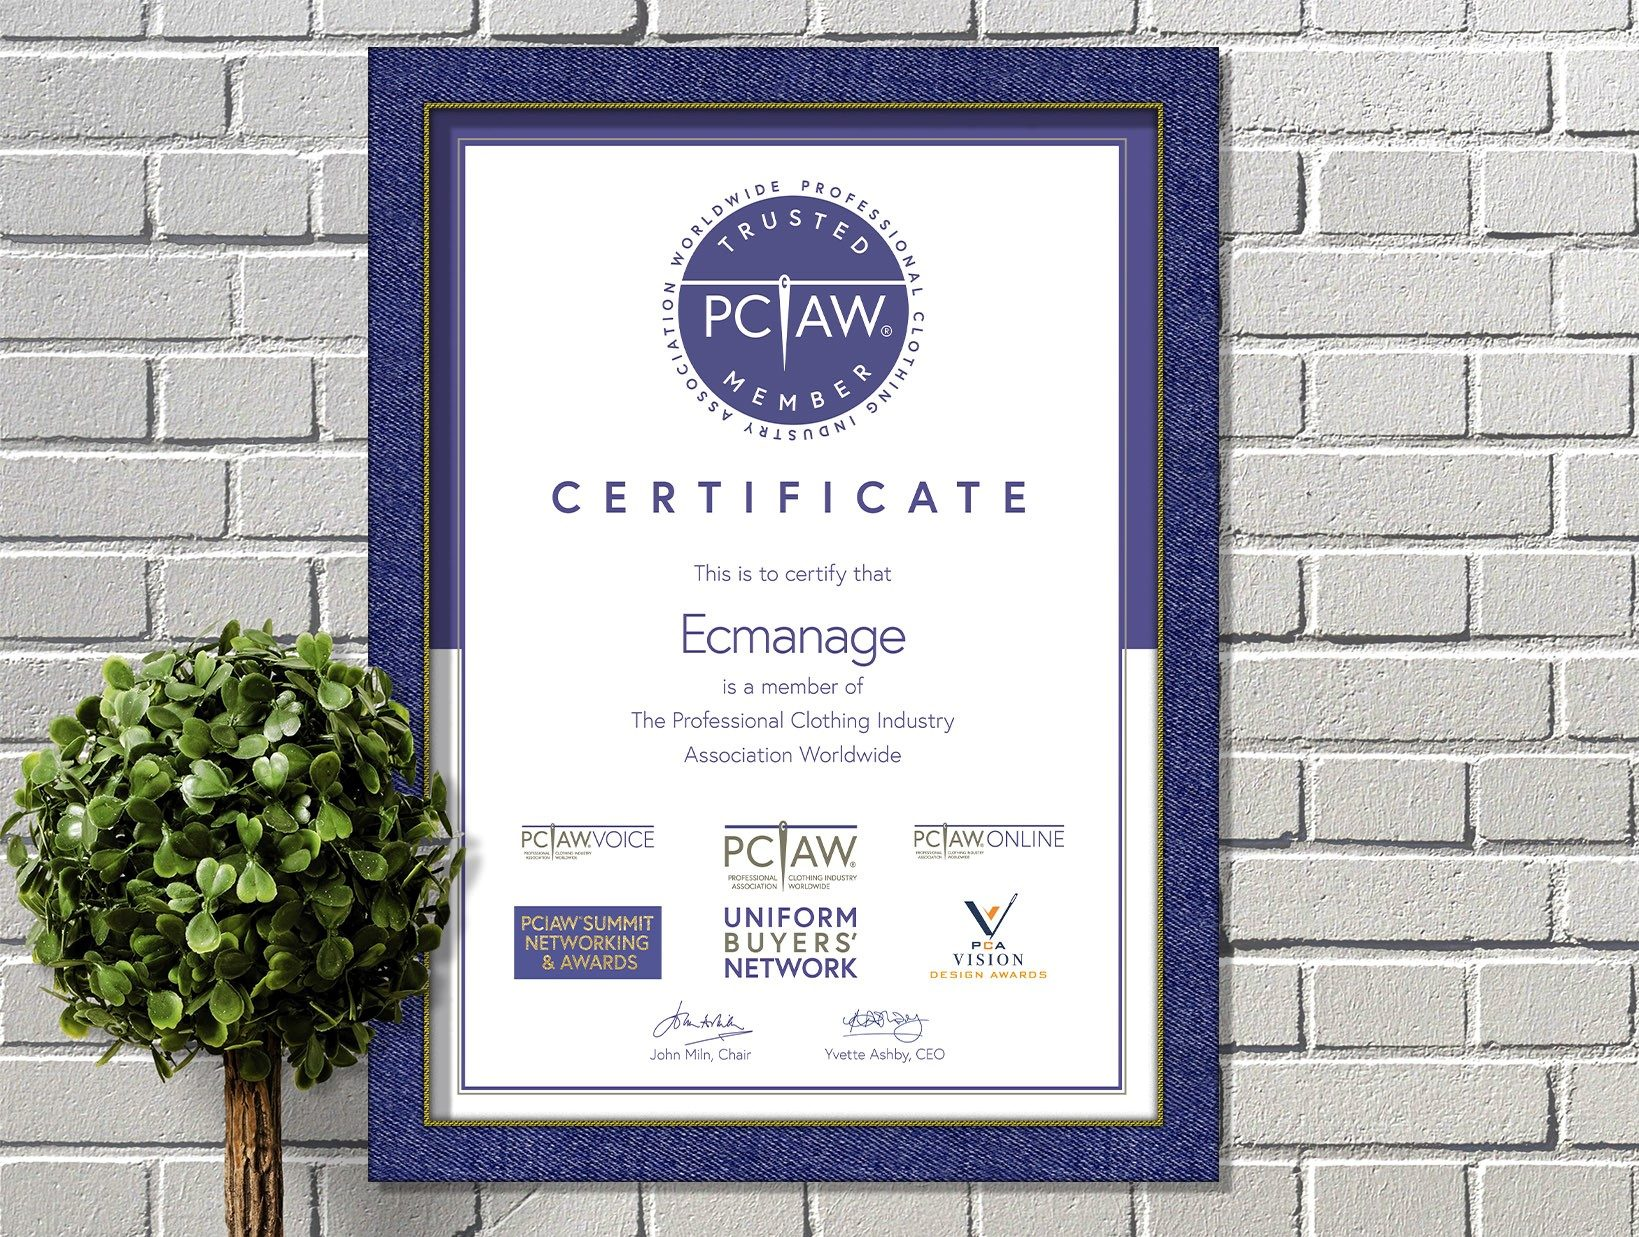 The PCIAW® is pleased to include Ecmanage, a leading wardrobe management system, as a highly esteemed PCIAW® Trusted Member.